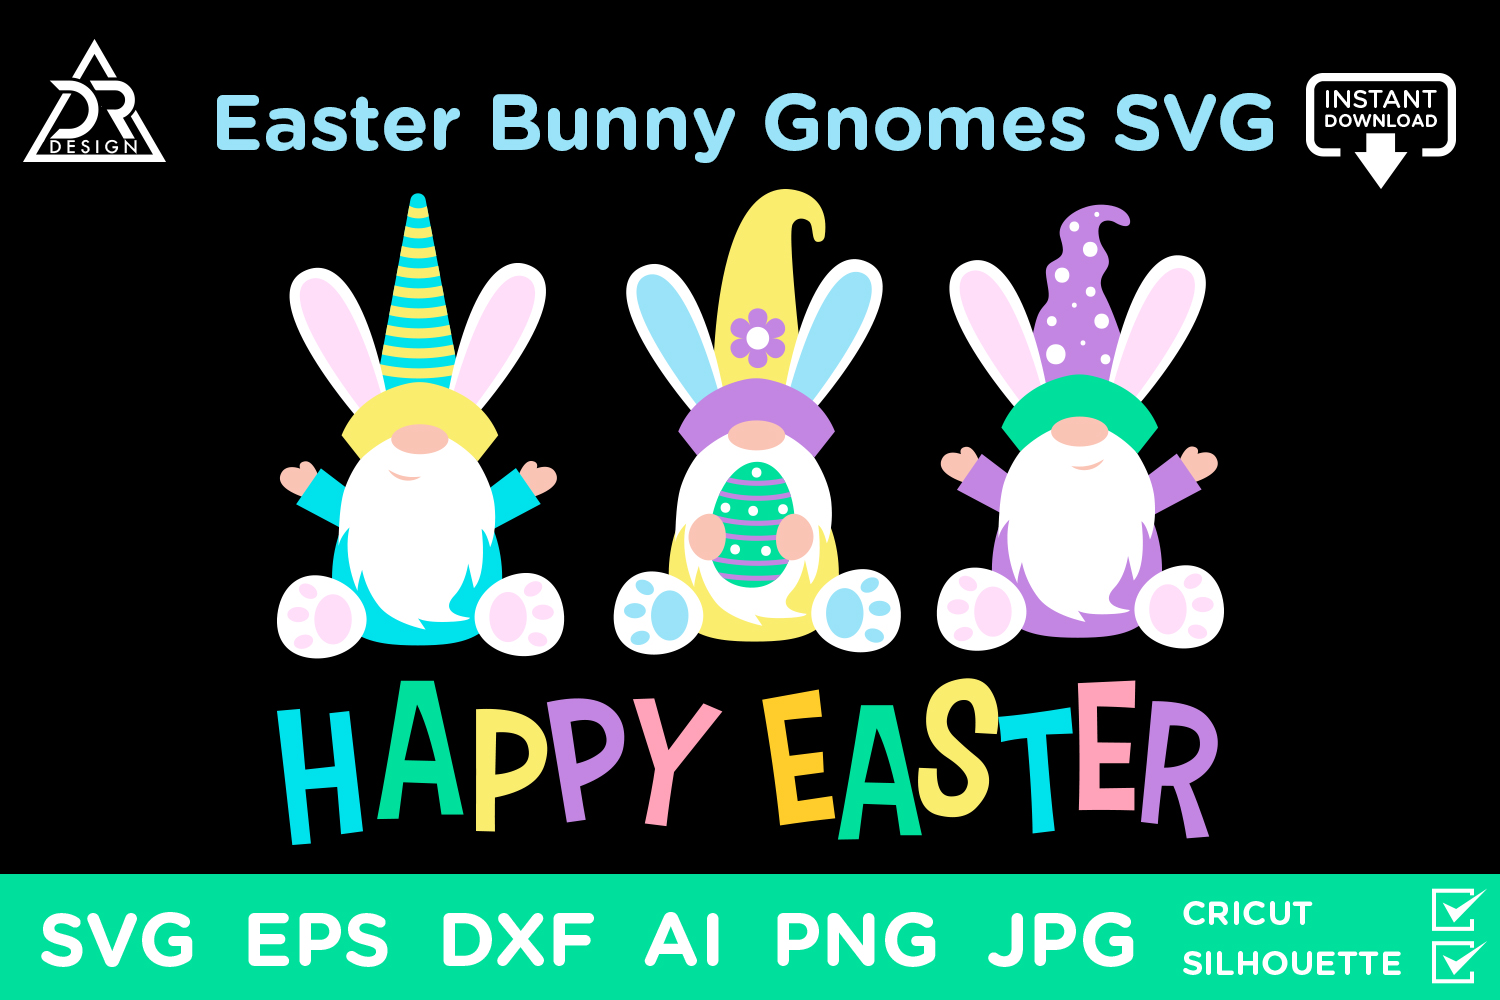 Download Free Easter Bunny Gnomes Graphic By Davidrockdesign Creative Fabrica for Cricut Explore, Silhouette and other cutting machines.